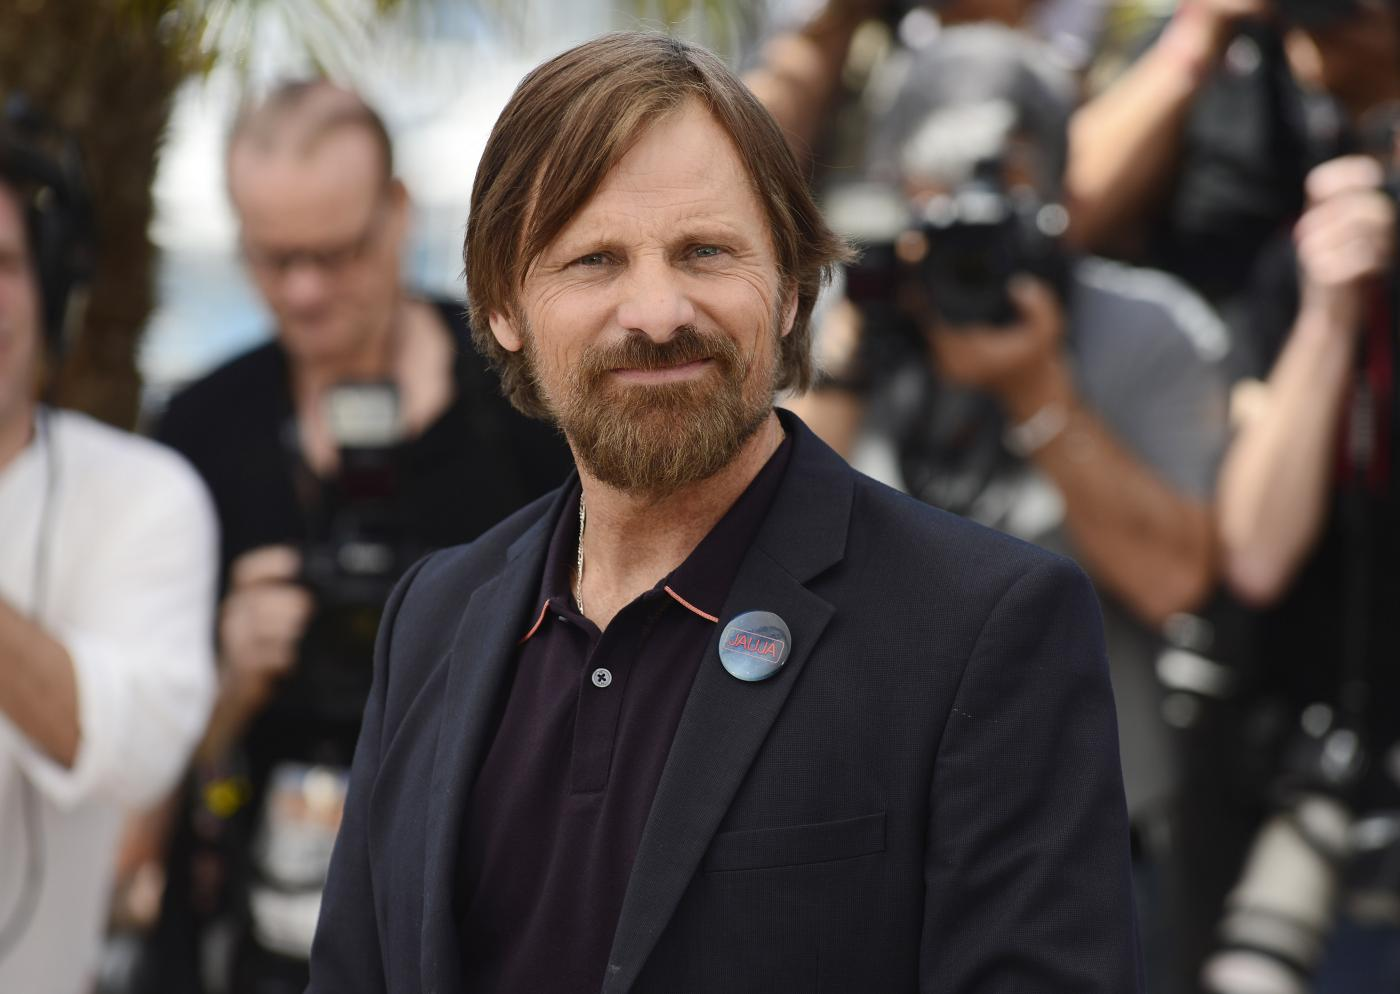 FRANCE-CANNES-FILM FESTIVAL-JAUJA-PHOTO CALL by .